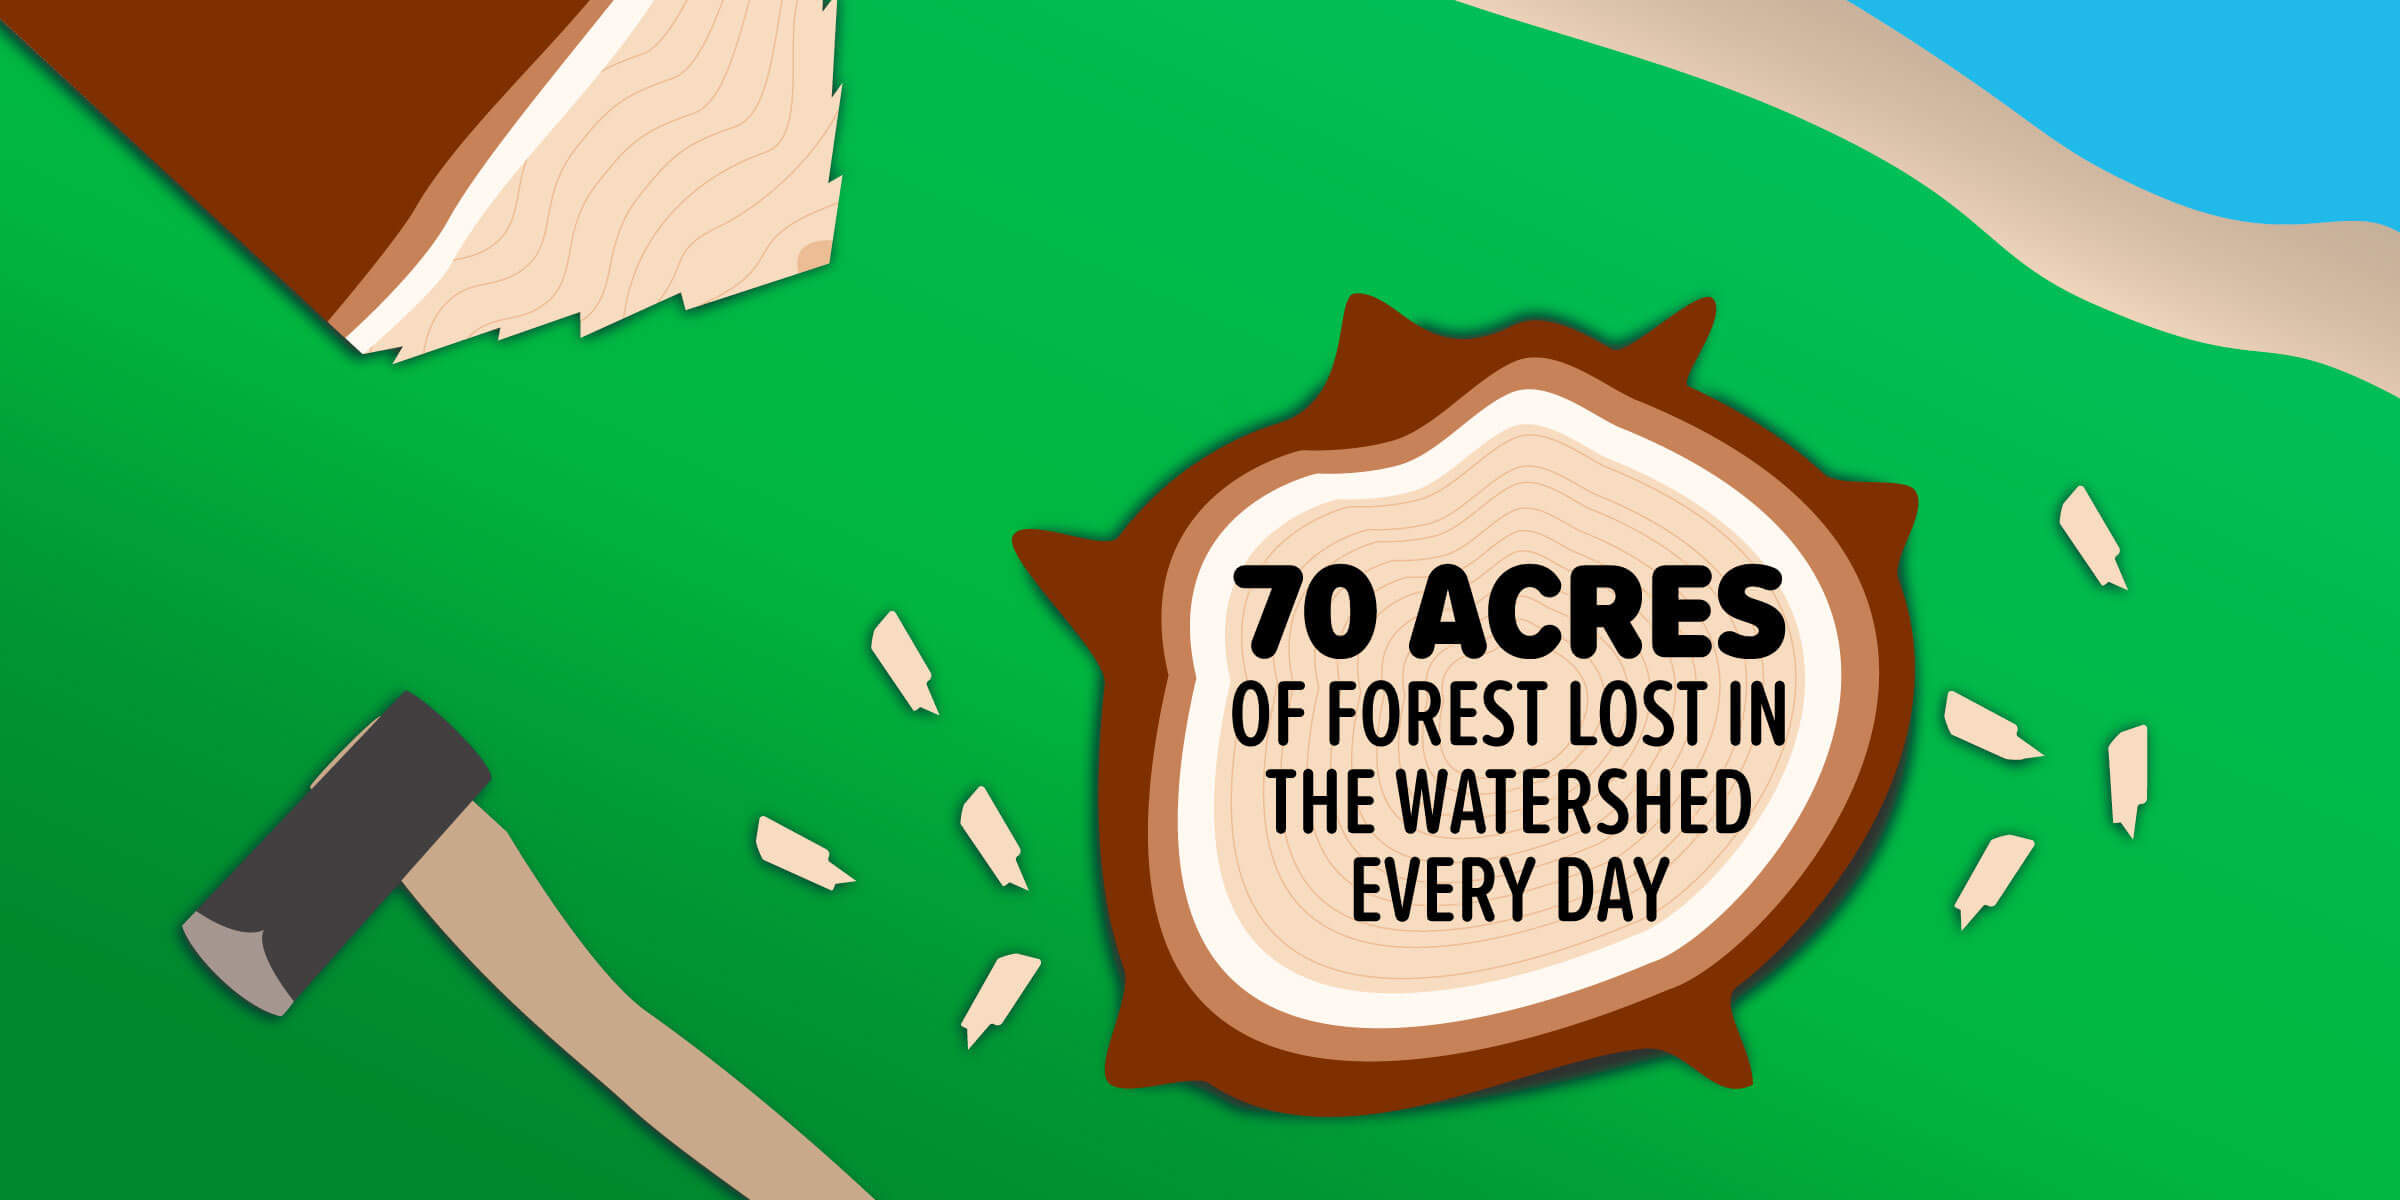 The watershed loses an estimated 70 acres of forest land every day.